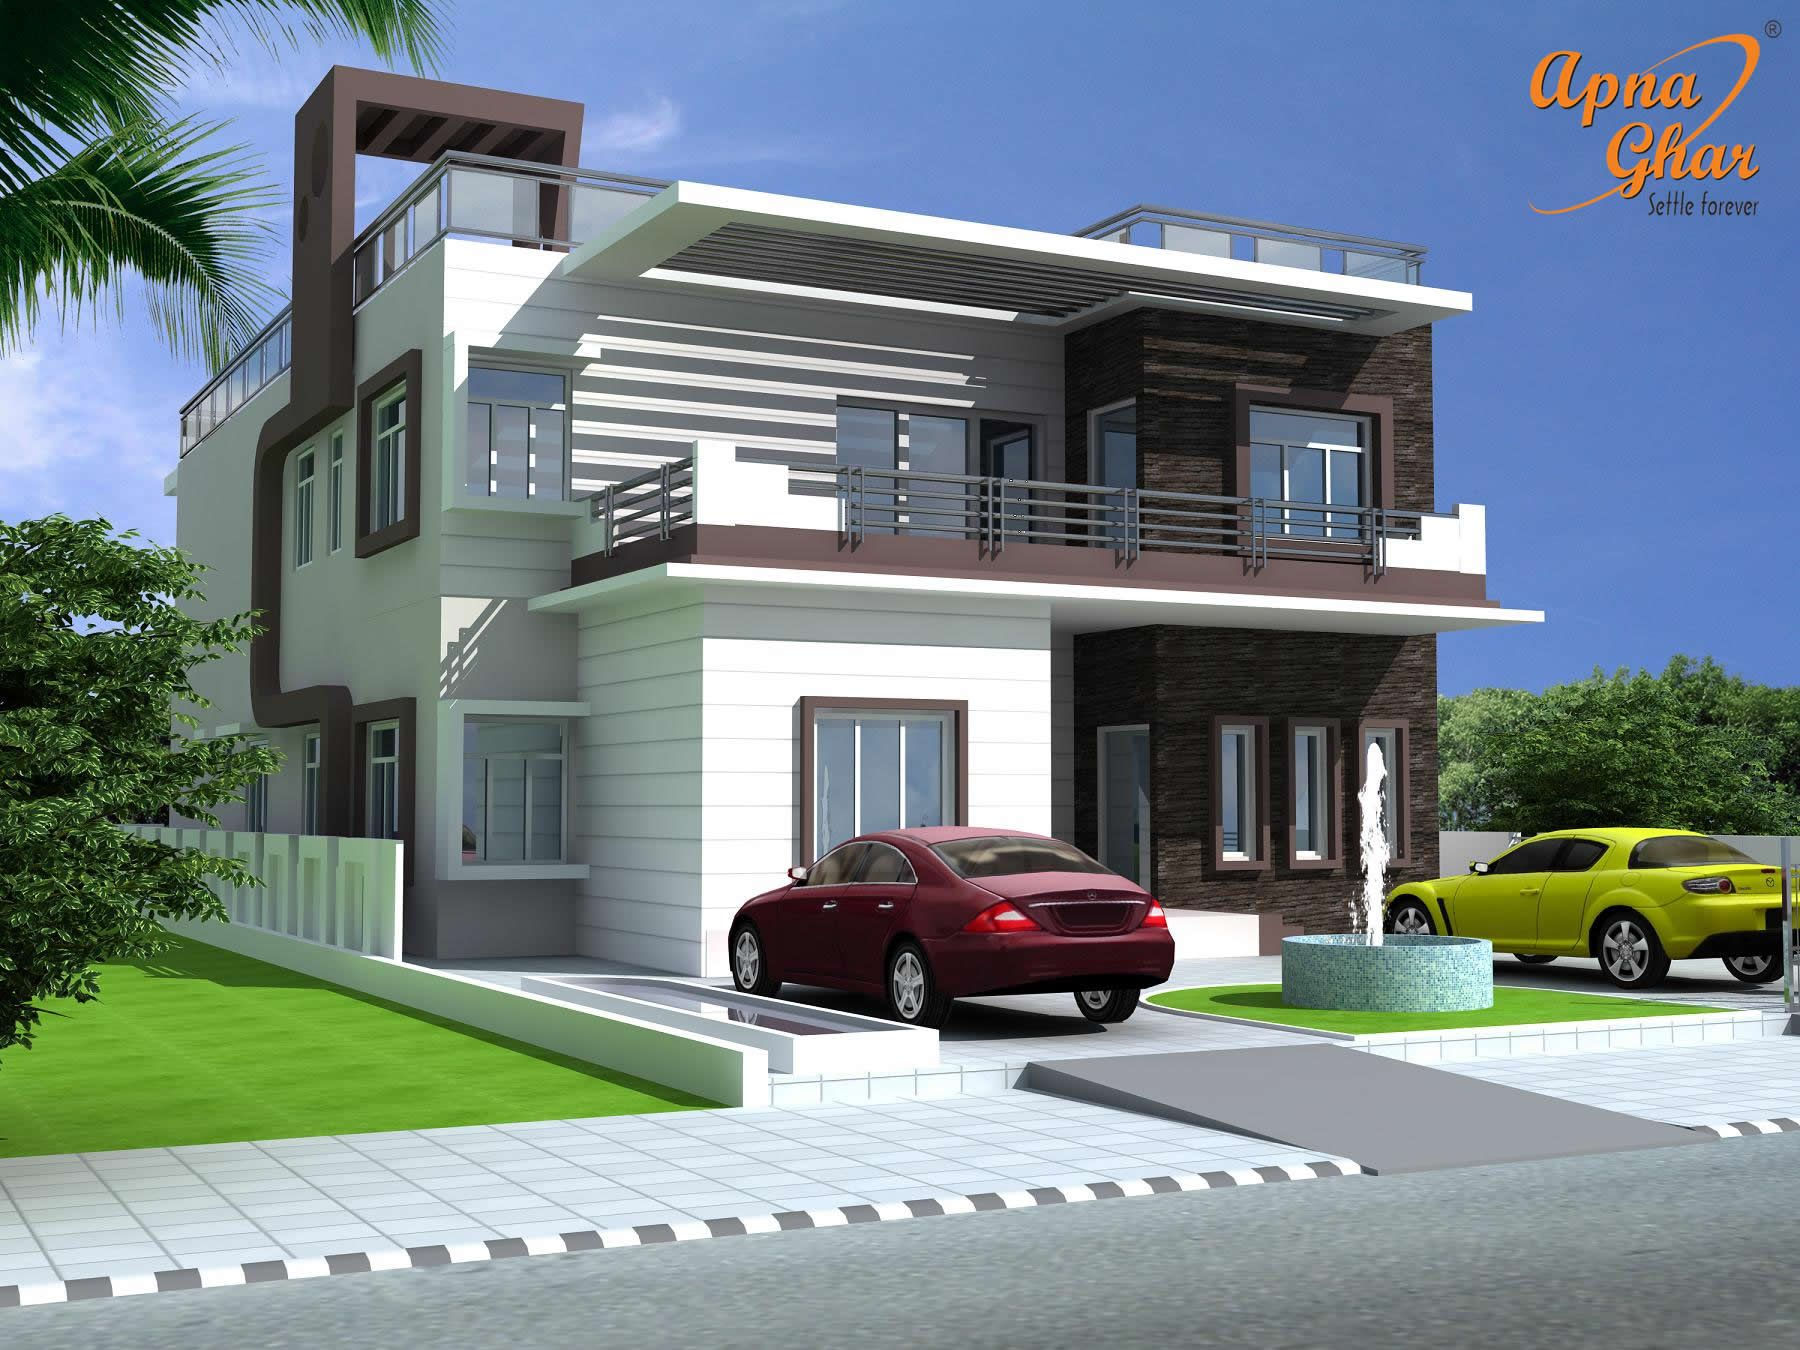 6 bedrooms duplex house design in 390m2 13m x 30m click for Duplex home design india